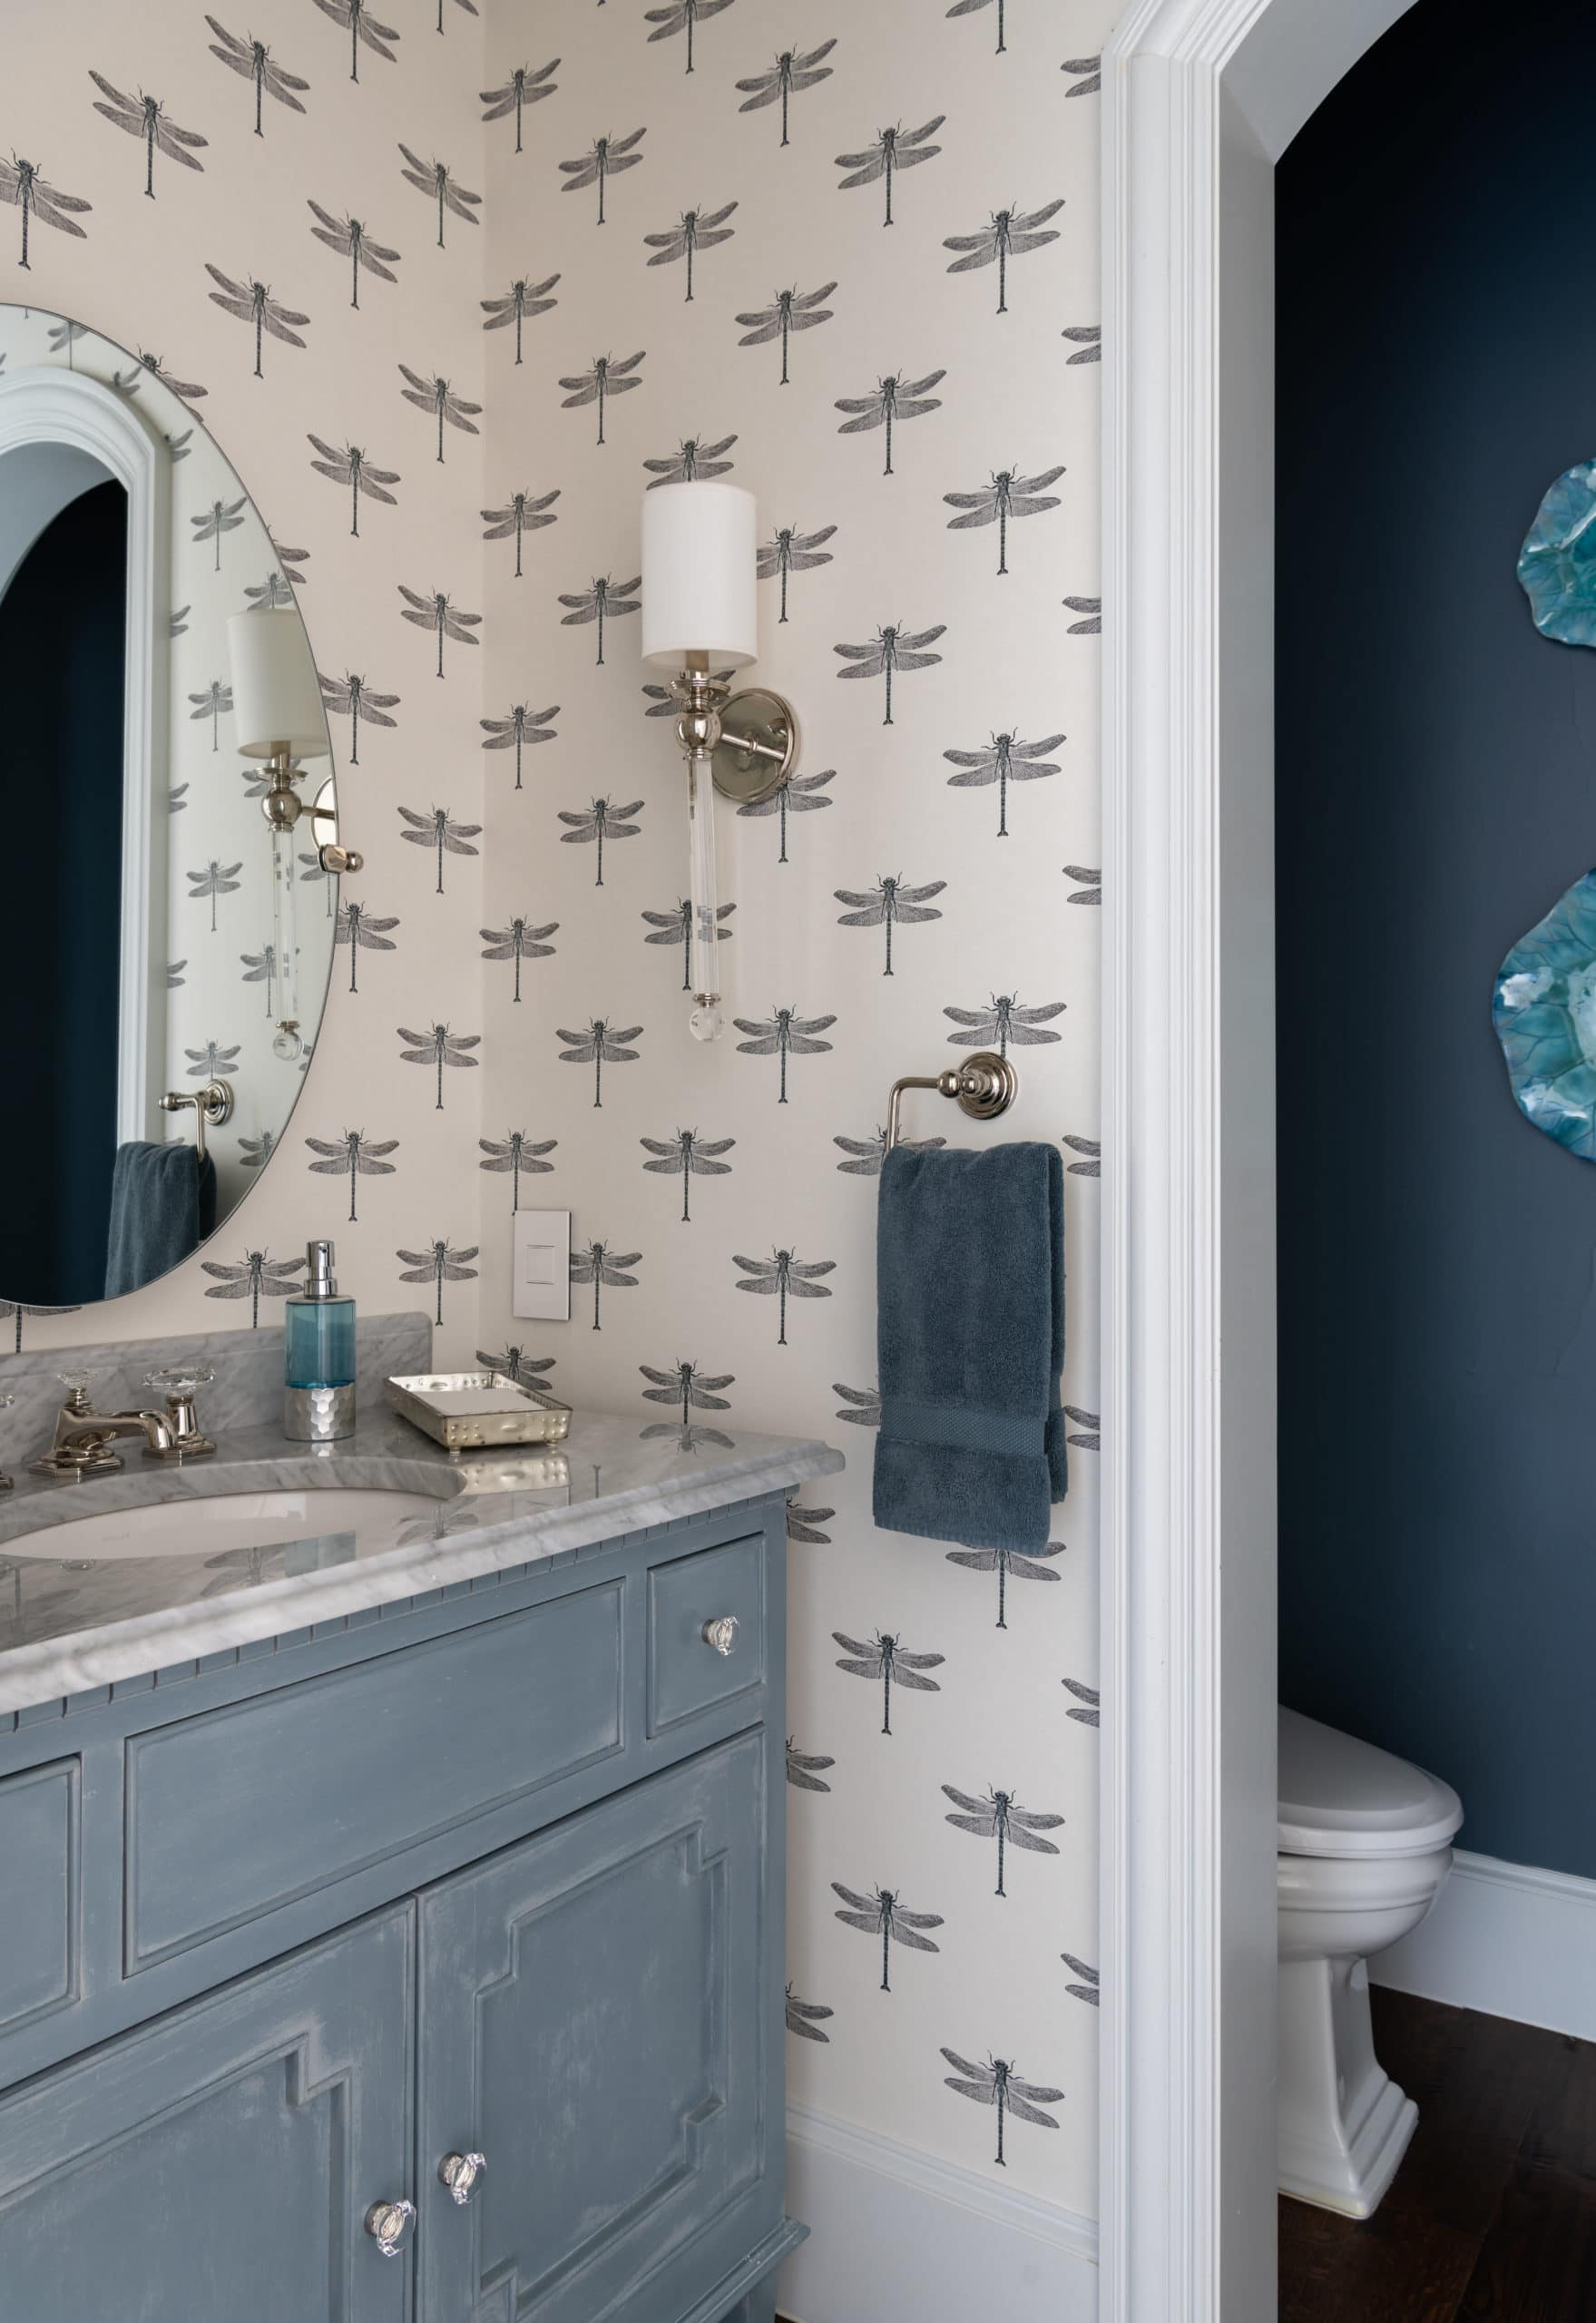 before and after powder room makeover photos, dragonfly wallpaper, blue powder room vanity ideas, blue cabinet ideas, blue walls, dragonfly wallpaper, 2020 Powder room ideas, modern Powder room ideas, Powder room ideas, dkorhome, Dallas Designers, neutral home office ideas with colorful accents interior design blog, D'KOR HOME by Dee Frazier Interiors, Interior Designers Near Me, Dallas TX, Dallas interior decorators, Dallas interior designers, Plano interior decorator, allen interior decorator, allen interior designer, frisco interior designer, frisco interior decorator, dallas home designer, award winning interior designer, asid dallas, color interiors spring, interior design dallas, interior decorator dallas, dallas interior design firms, interior design dallas texas, texas interior design, residential interior design firms dallas, dallas interior design service, granite interiors dallas2020 Powder room ideas, modern Powder room ideas, Powder room ideas, dkorhome, Dallas Designers, neutral home office ideas with colorful accents interior design blog, D'KOR HOME by Dee Frazier Interiors, Interior Designers Near Me, Dallas TX, Dallas interior decorators, Dallas interior designers, Plano interior decorator, allen interior decorator, allen interior designer, frisco interior designer, frisco interior decorator, dallas home designer, award winning interior designer, asid dallas, color interiors spring, interior design dallas, interior decorator dallas, dallas interior design firms, interior design dallas texas, texas interior design, residential interior design firms dallas, dallas interior design service, granite interiors dallas